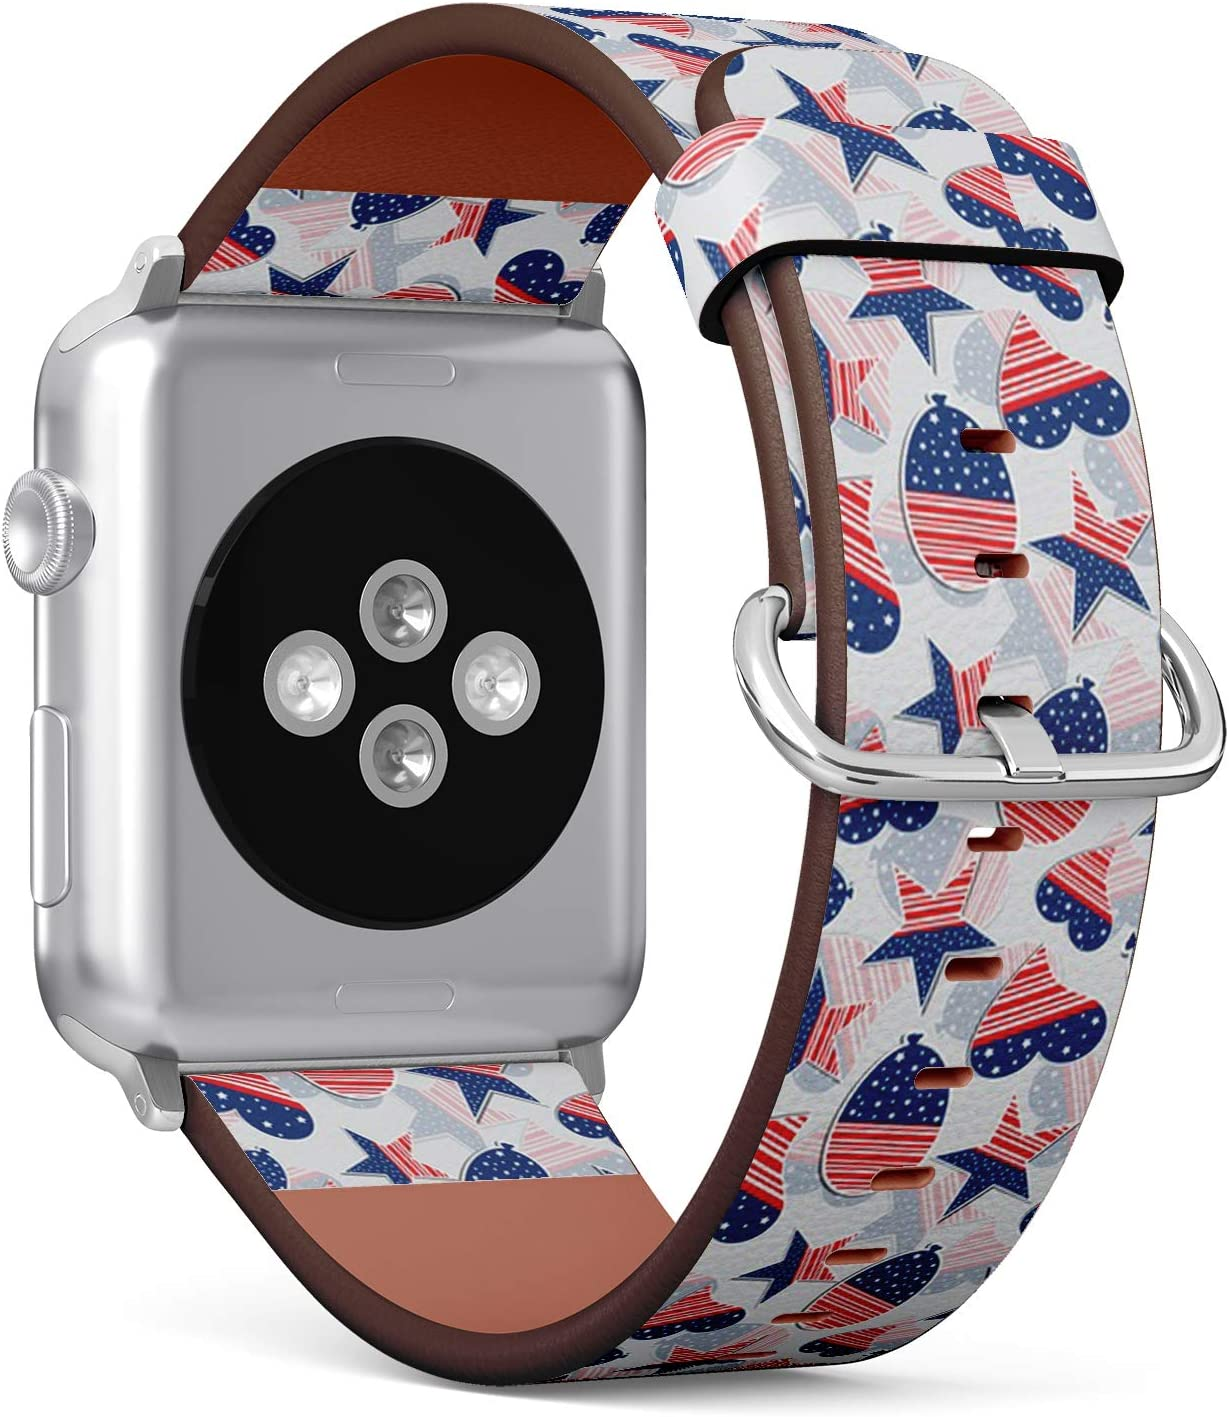 Compatible with Apple Watch (Big 42mm/44mm) Series 1,2,3,4 - Leather Band Bracelet Strap Wristband Replacement - 4Th July American